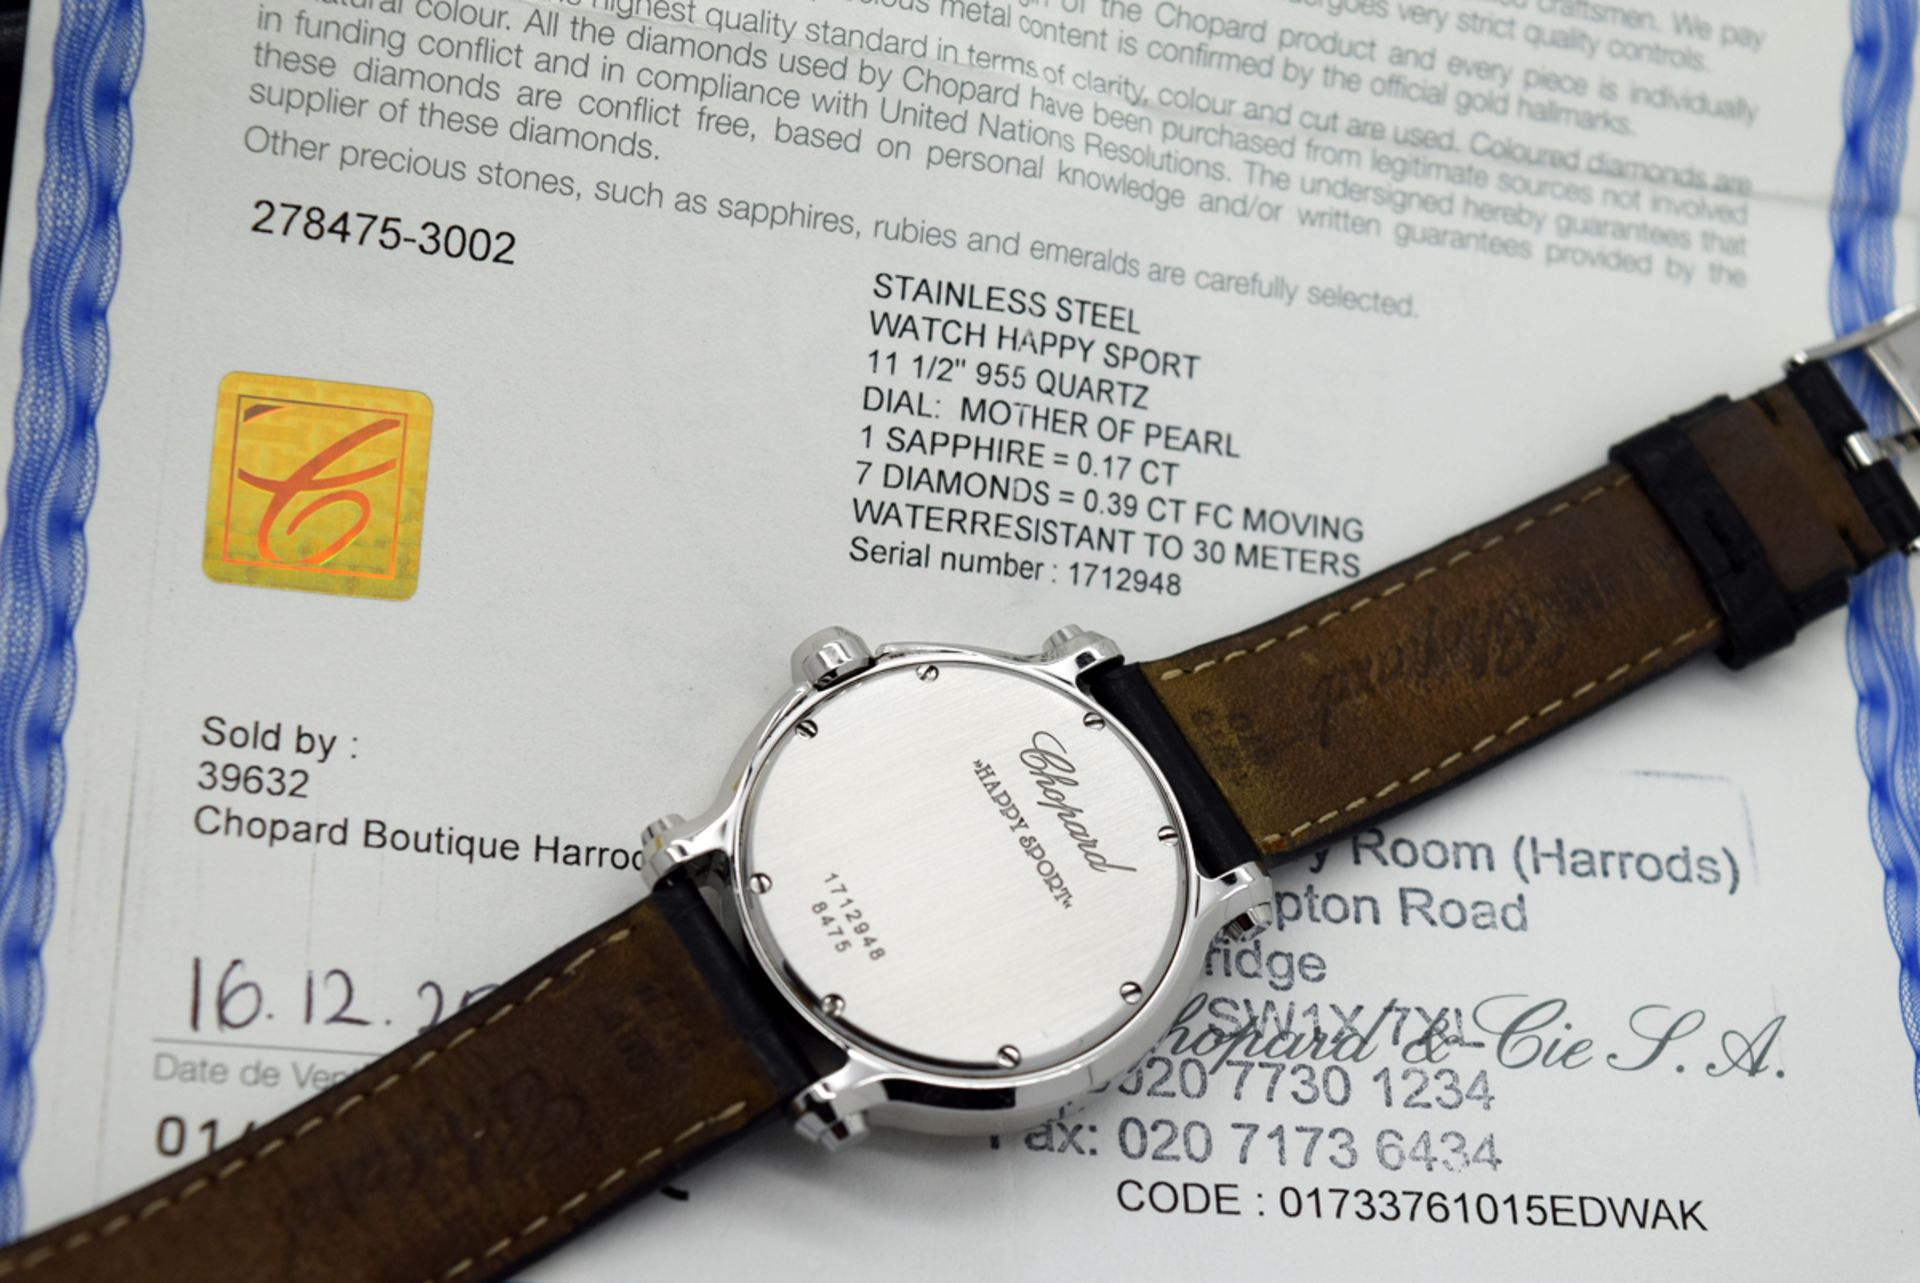 Chopard Happy Sport - Diamond Model with Mother of Pearl Dial! - Image 6 of 12